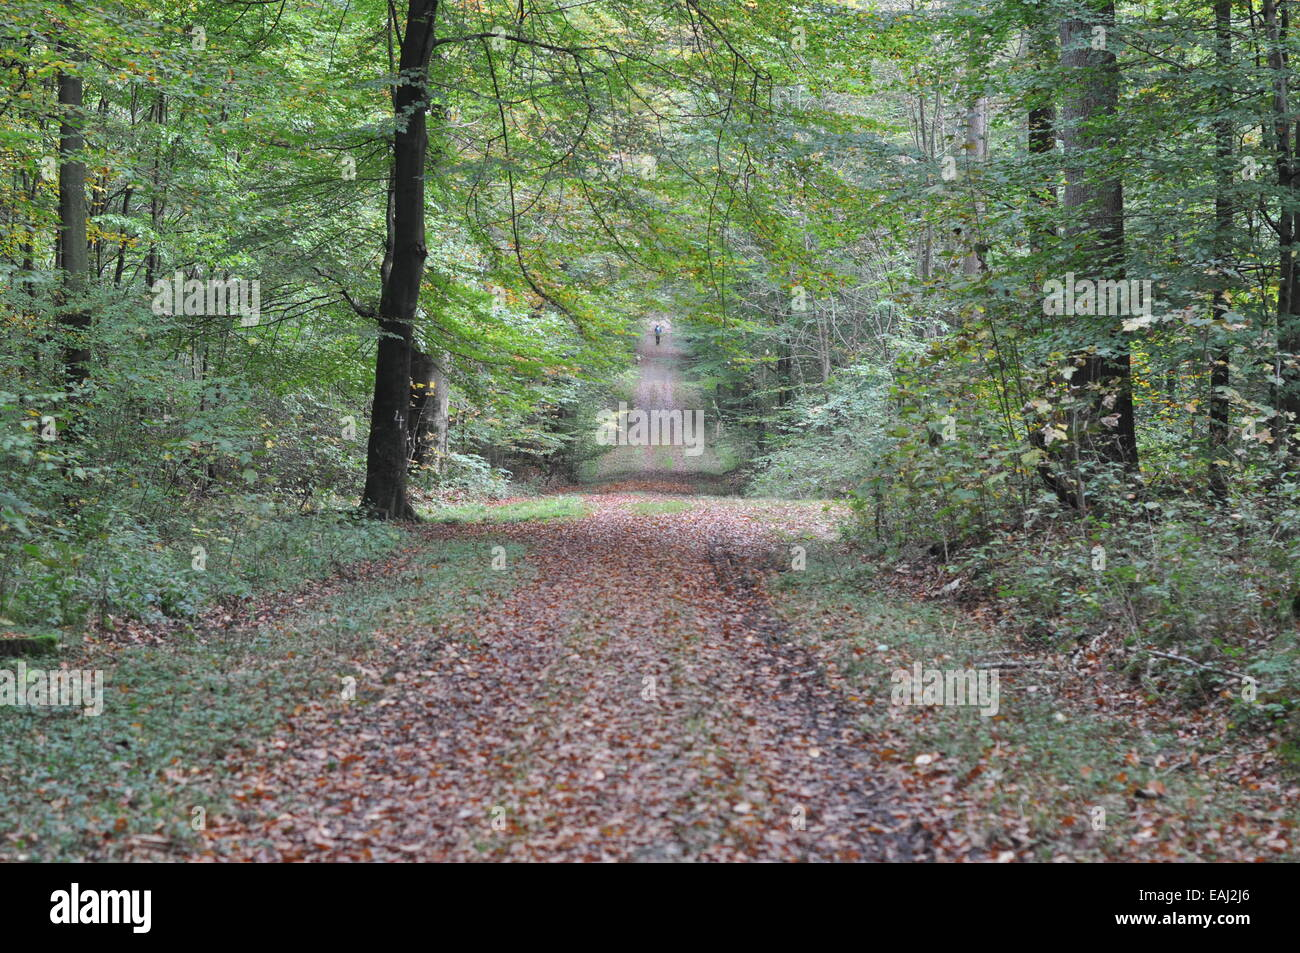 Laub, Laubwald, Herbst, Blätter, autumn, green leaves, wood, forest, path - Stock Image